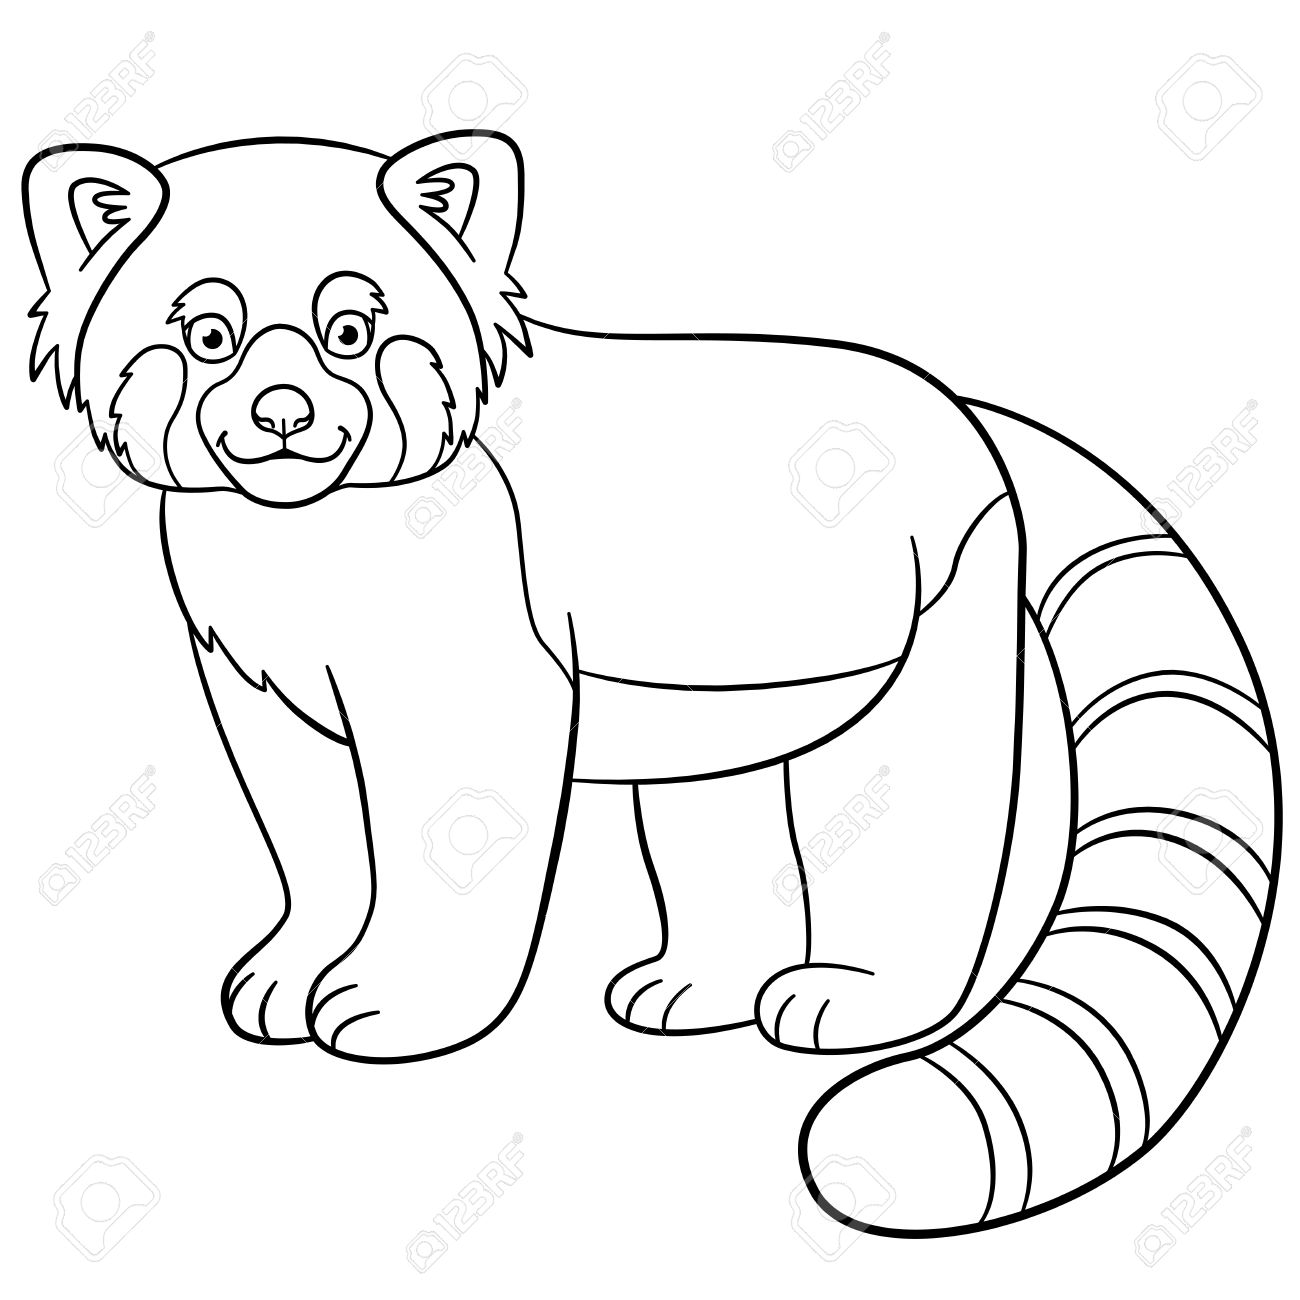 1300x1300 Coloring Pages. Little Cute Red Panda Stands And Smiles. Royalty